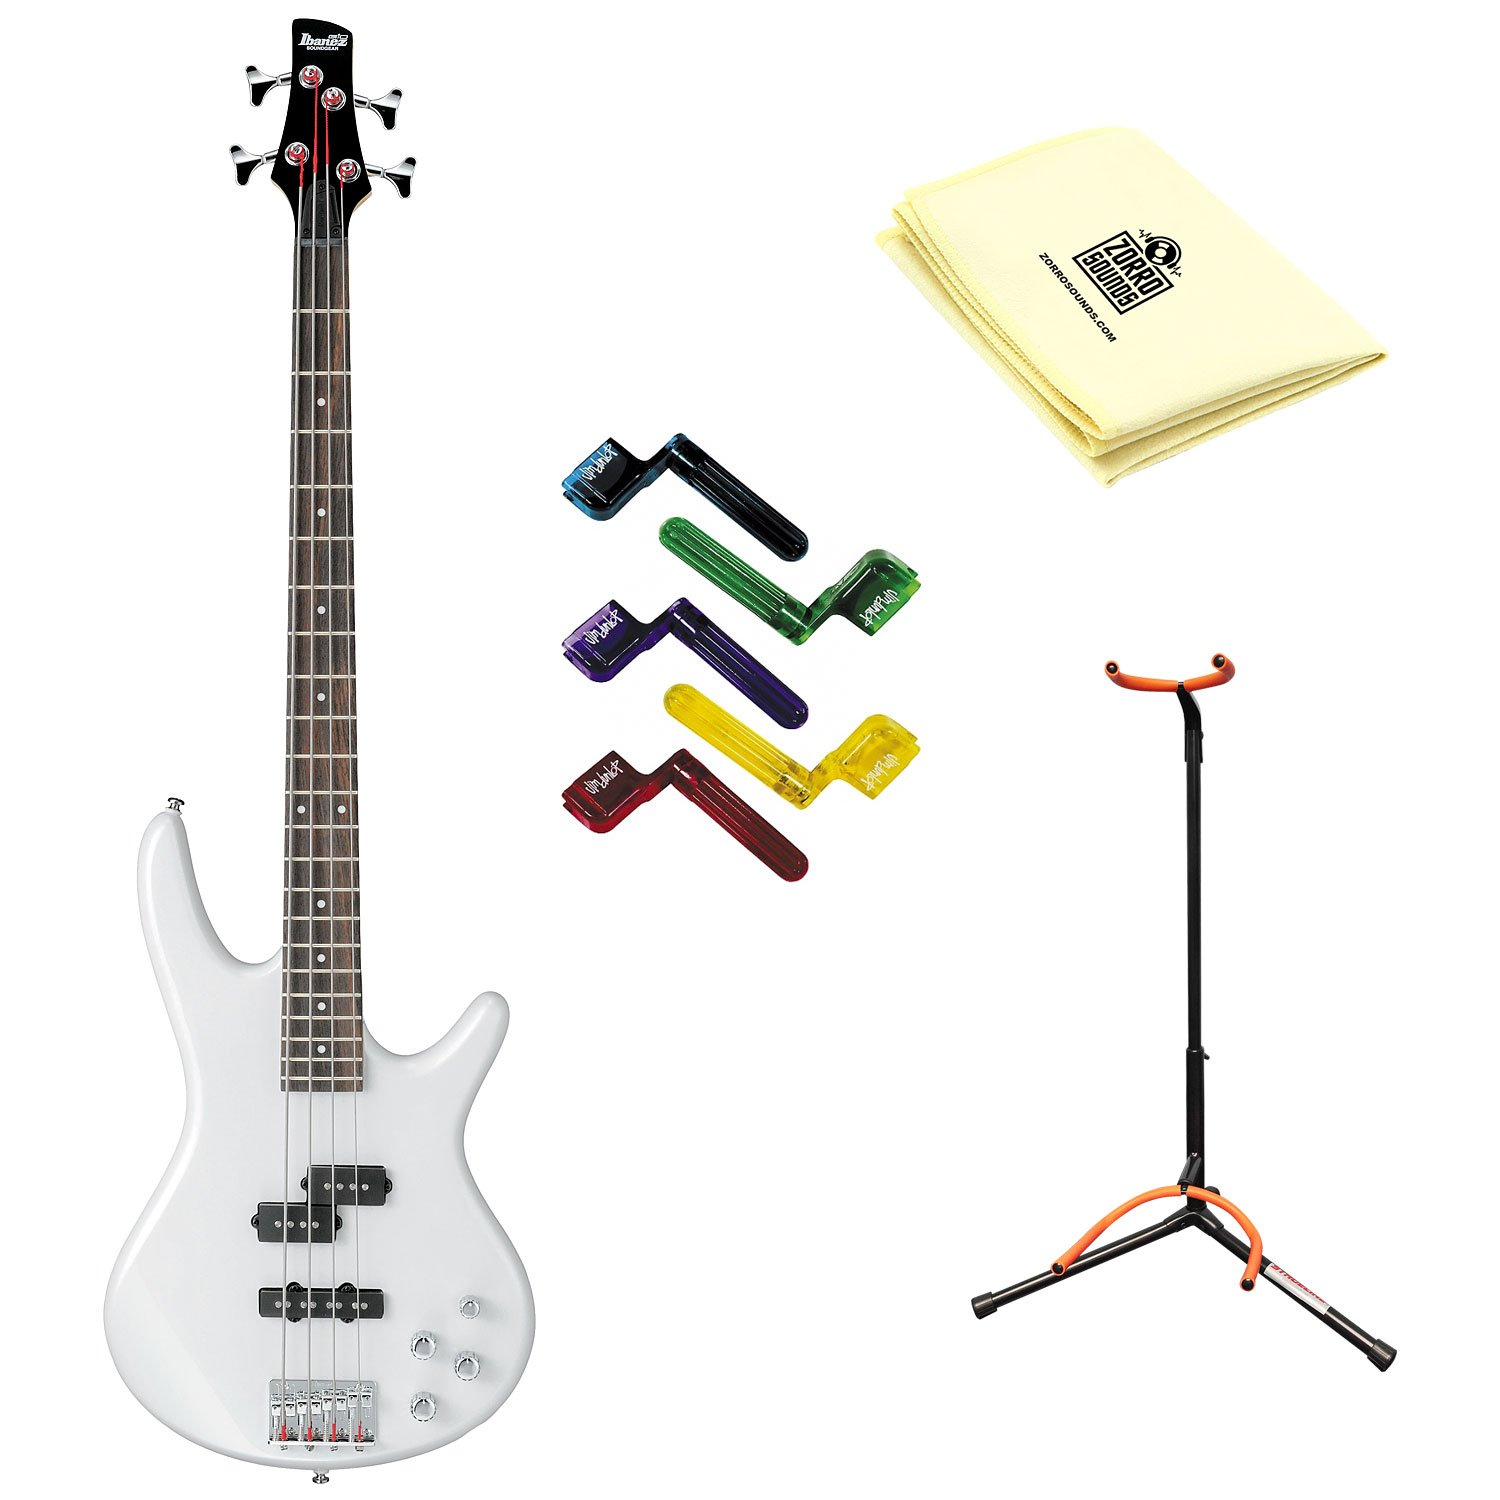 Ibanez GSR200PW Electric Bass Guitar with Pearl White Finish With Polishing Cloth, Stand, and Pegwinders